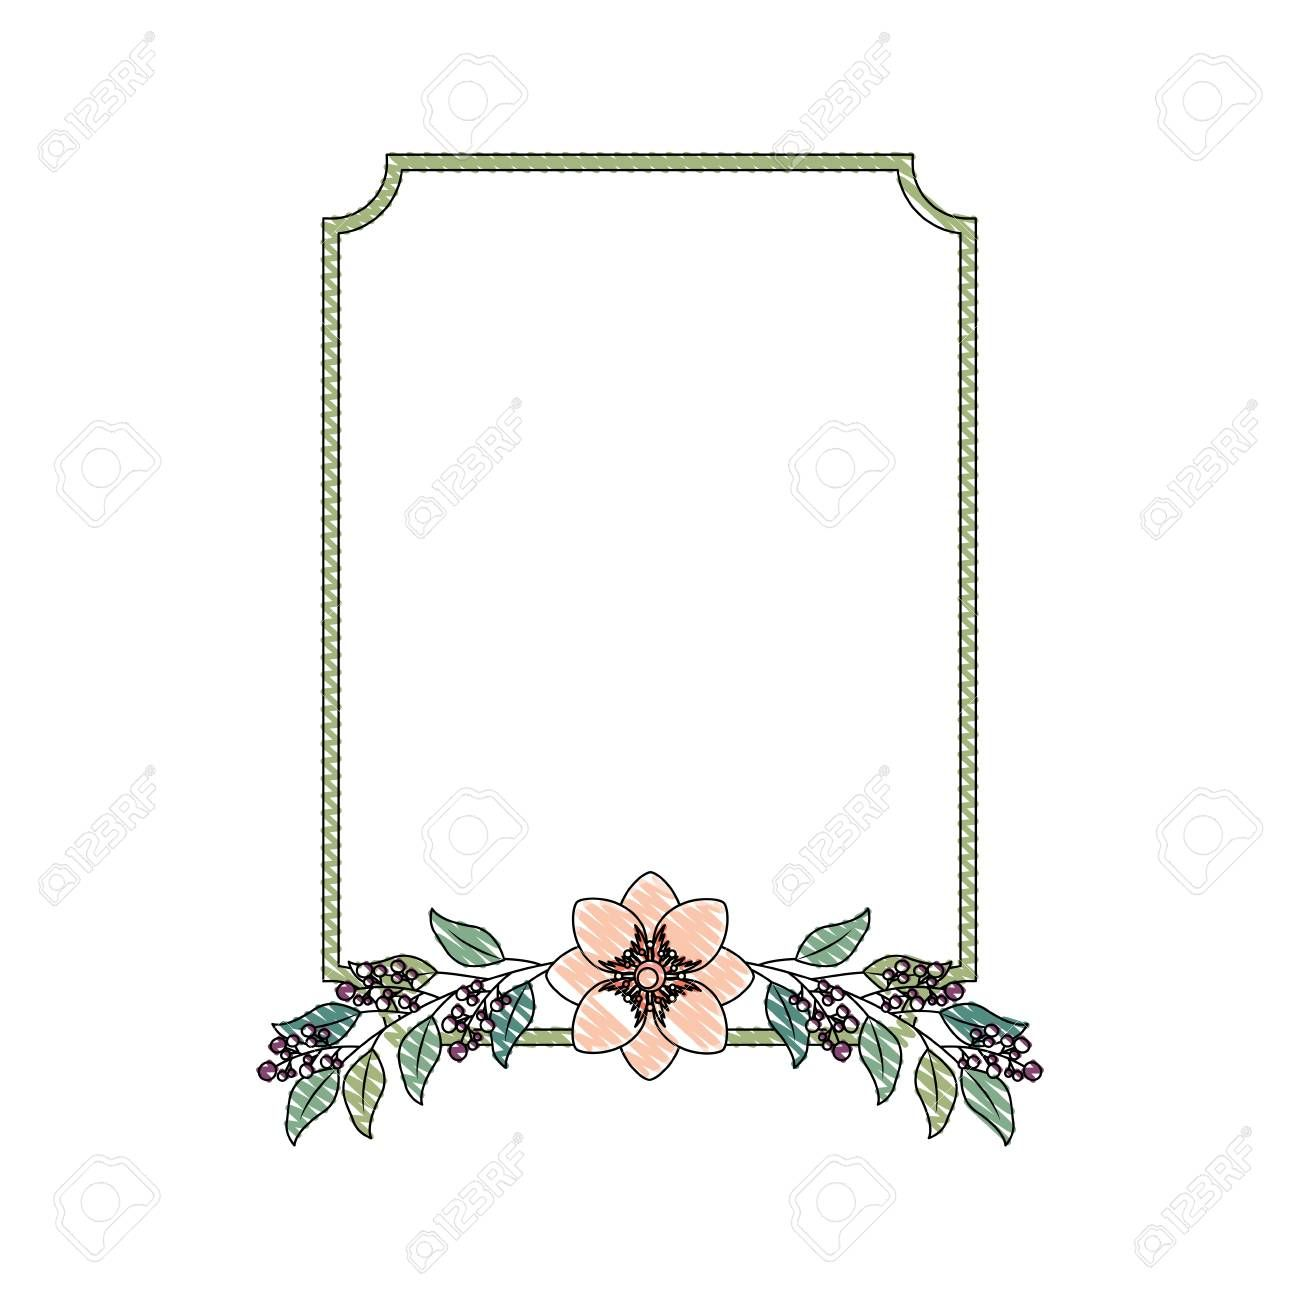 Vintage Square Frame Flower Branch Decoration Vector Illustration Drawing Ad Frame Flower Vintage Square B Branch Decor Flower Frame Flower Branch